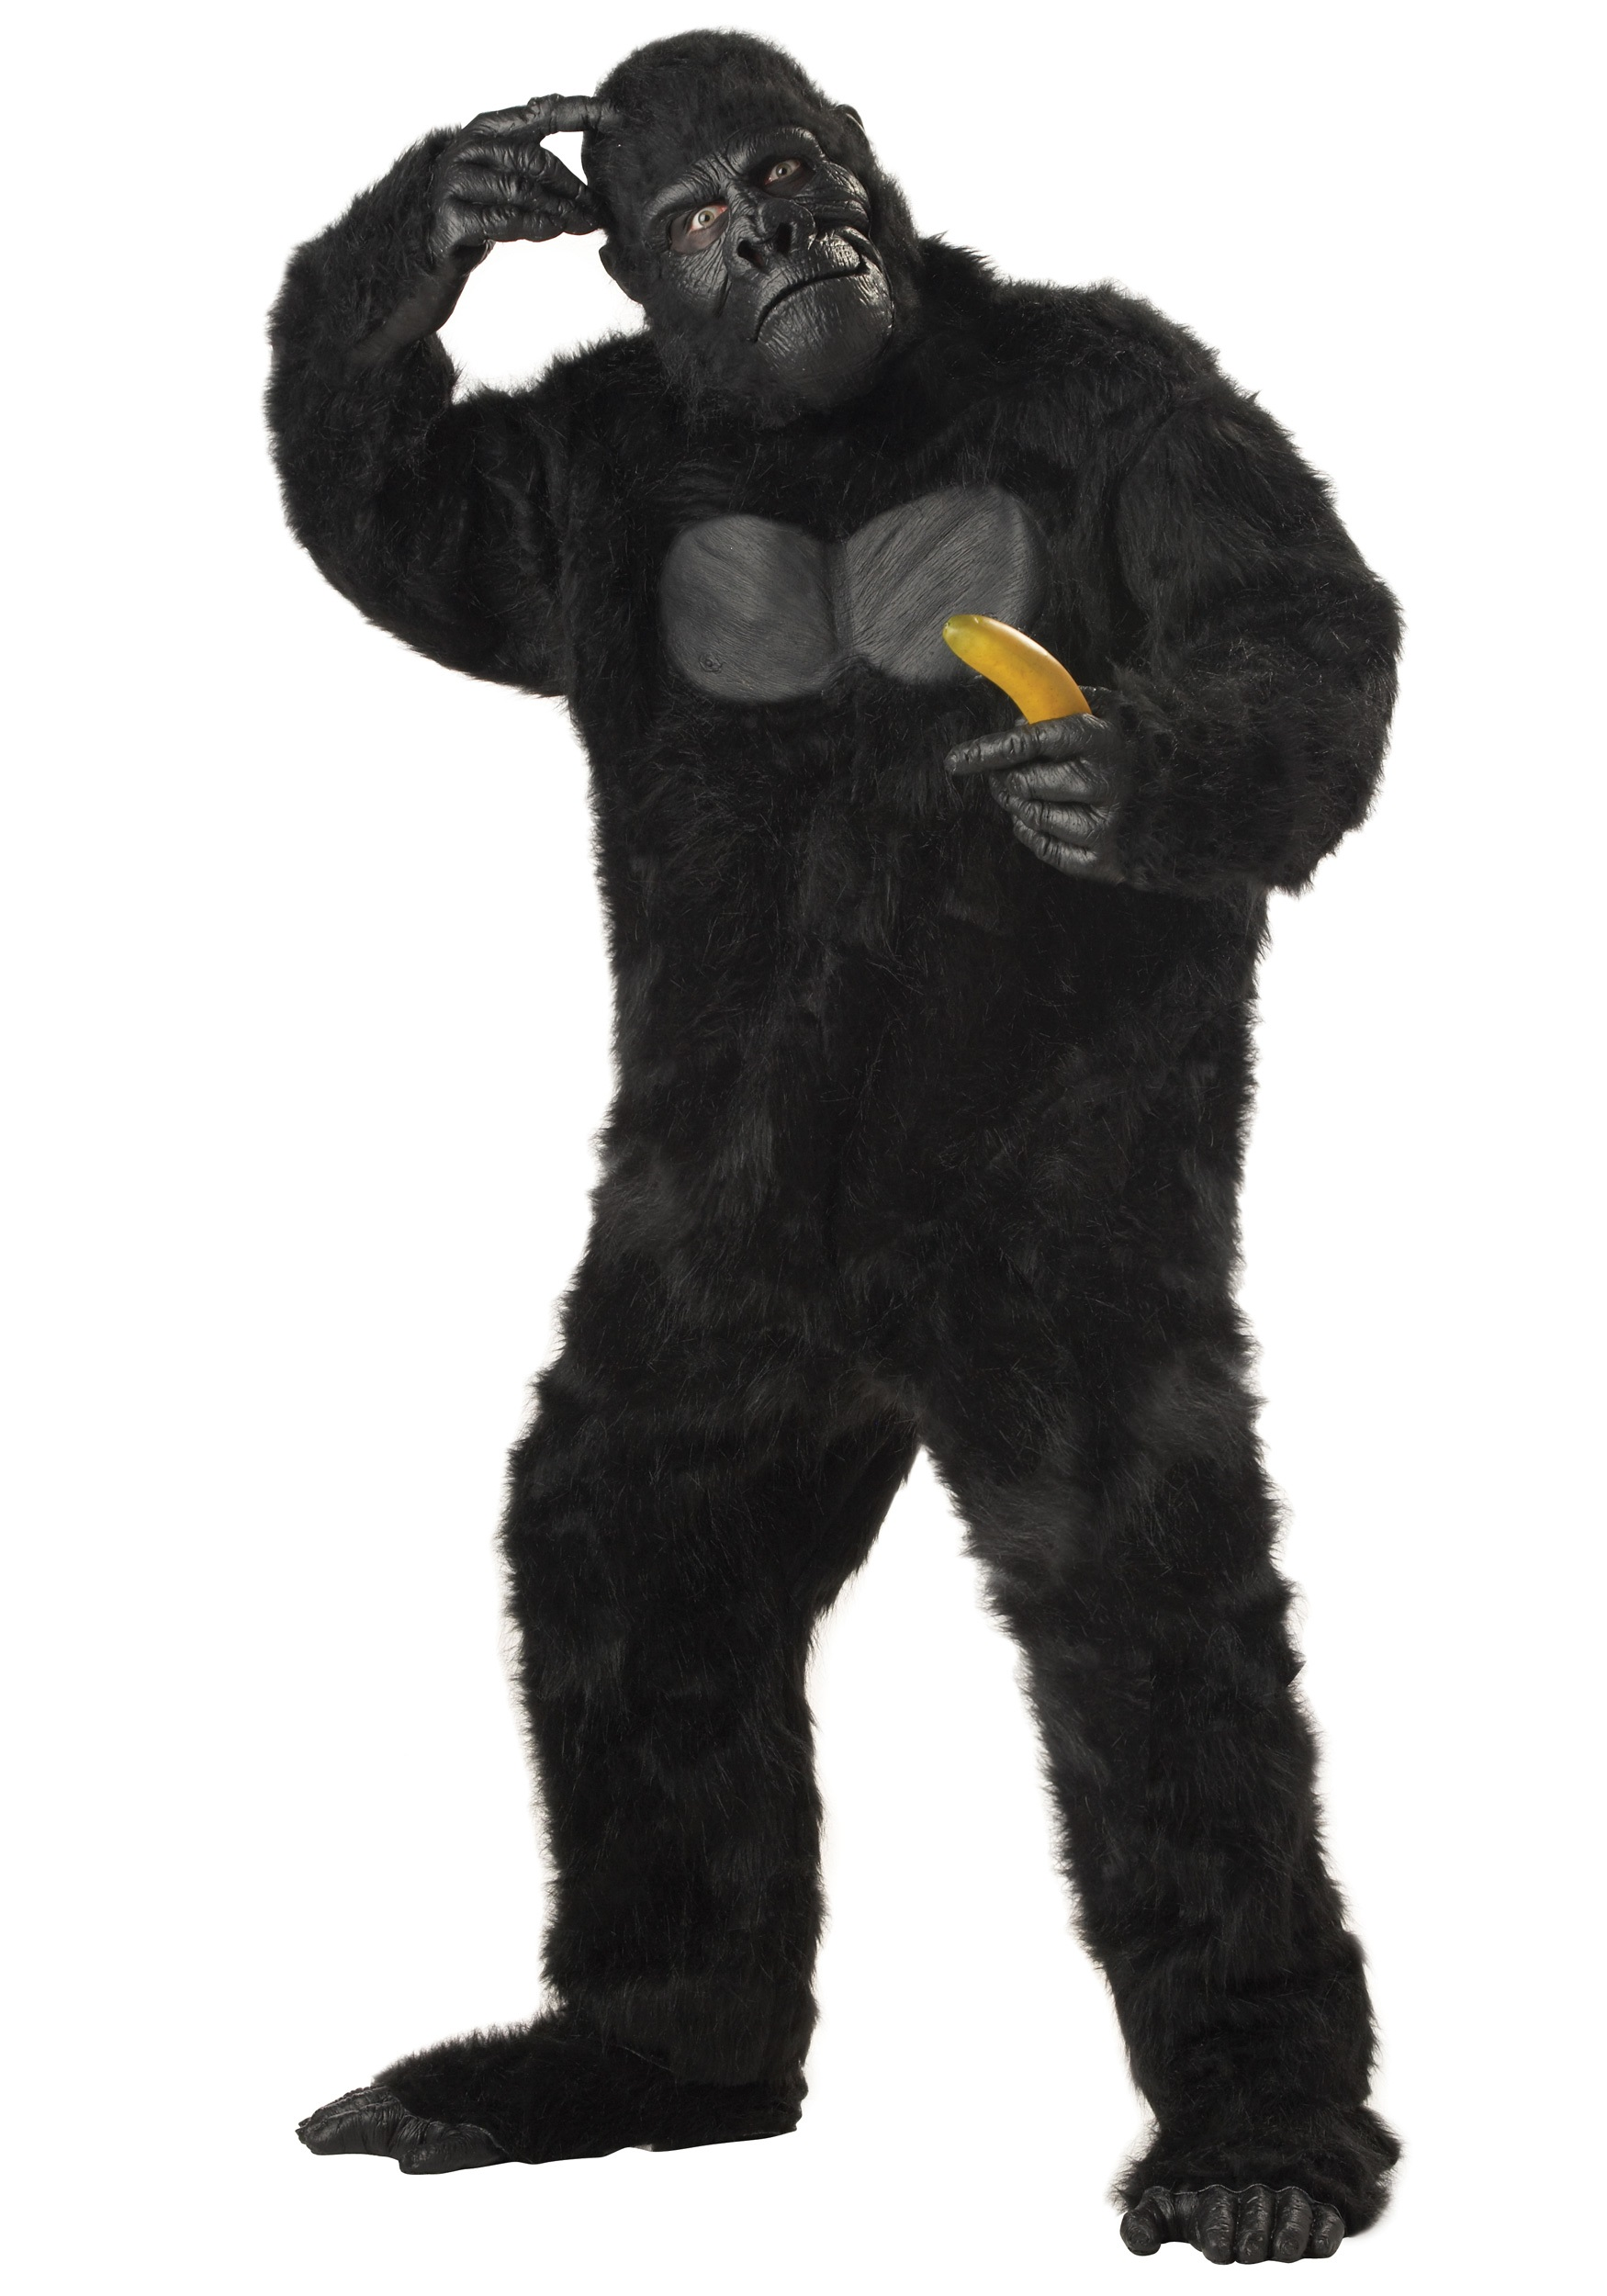 Adult Gorilla Costume. View Product Video